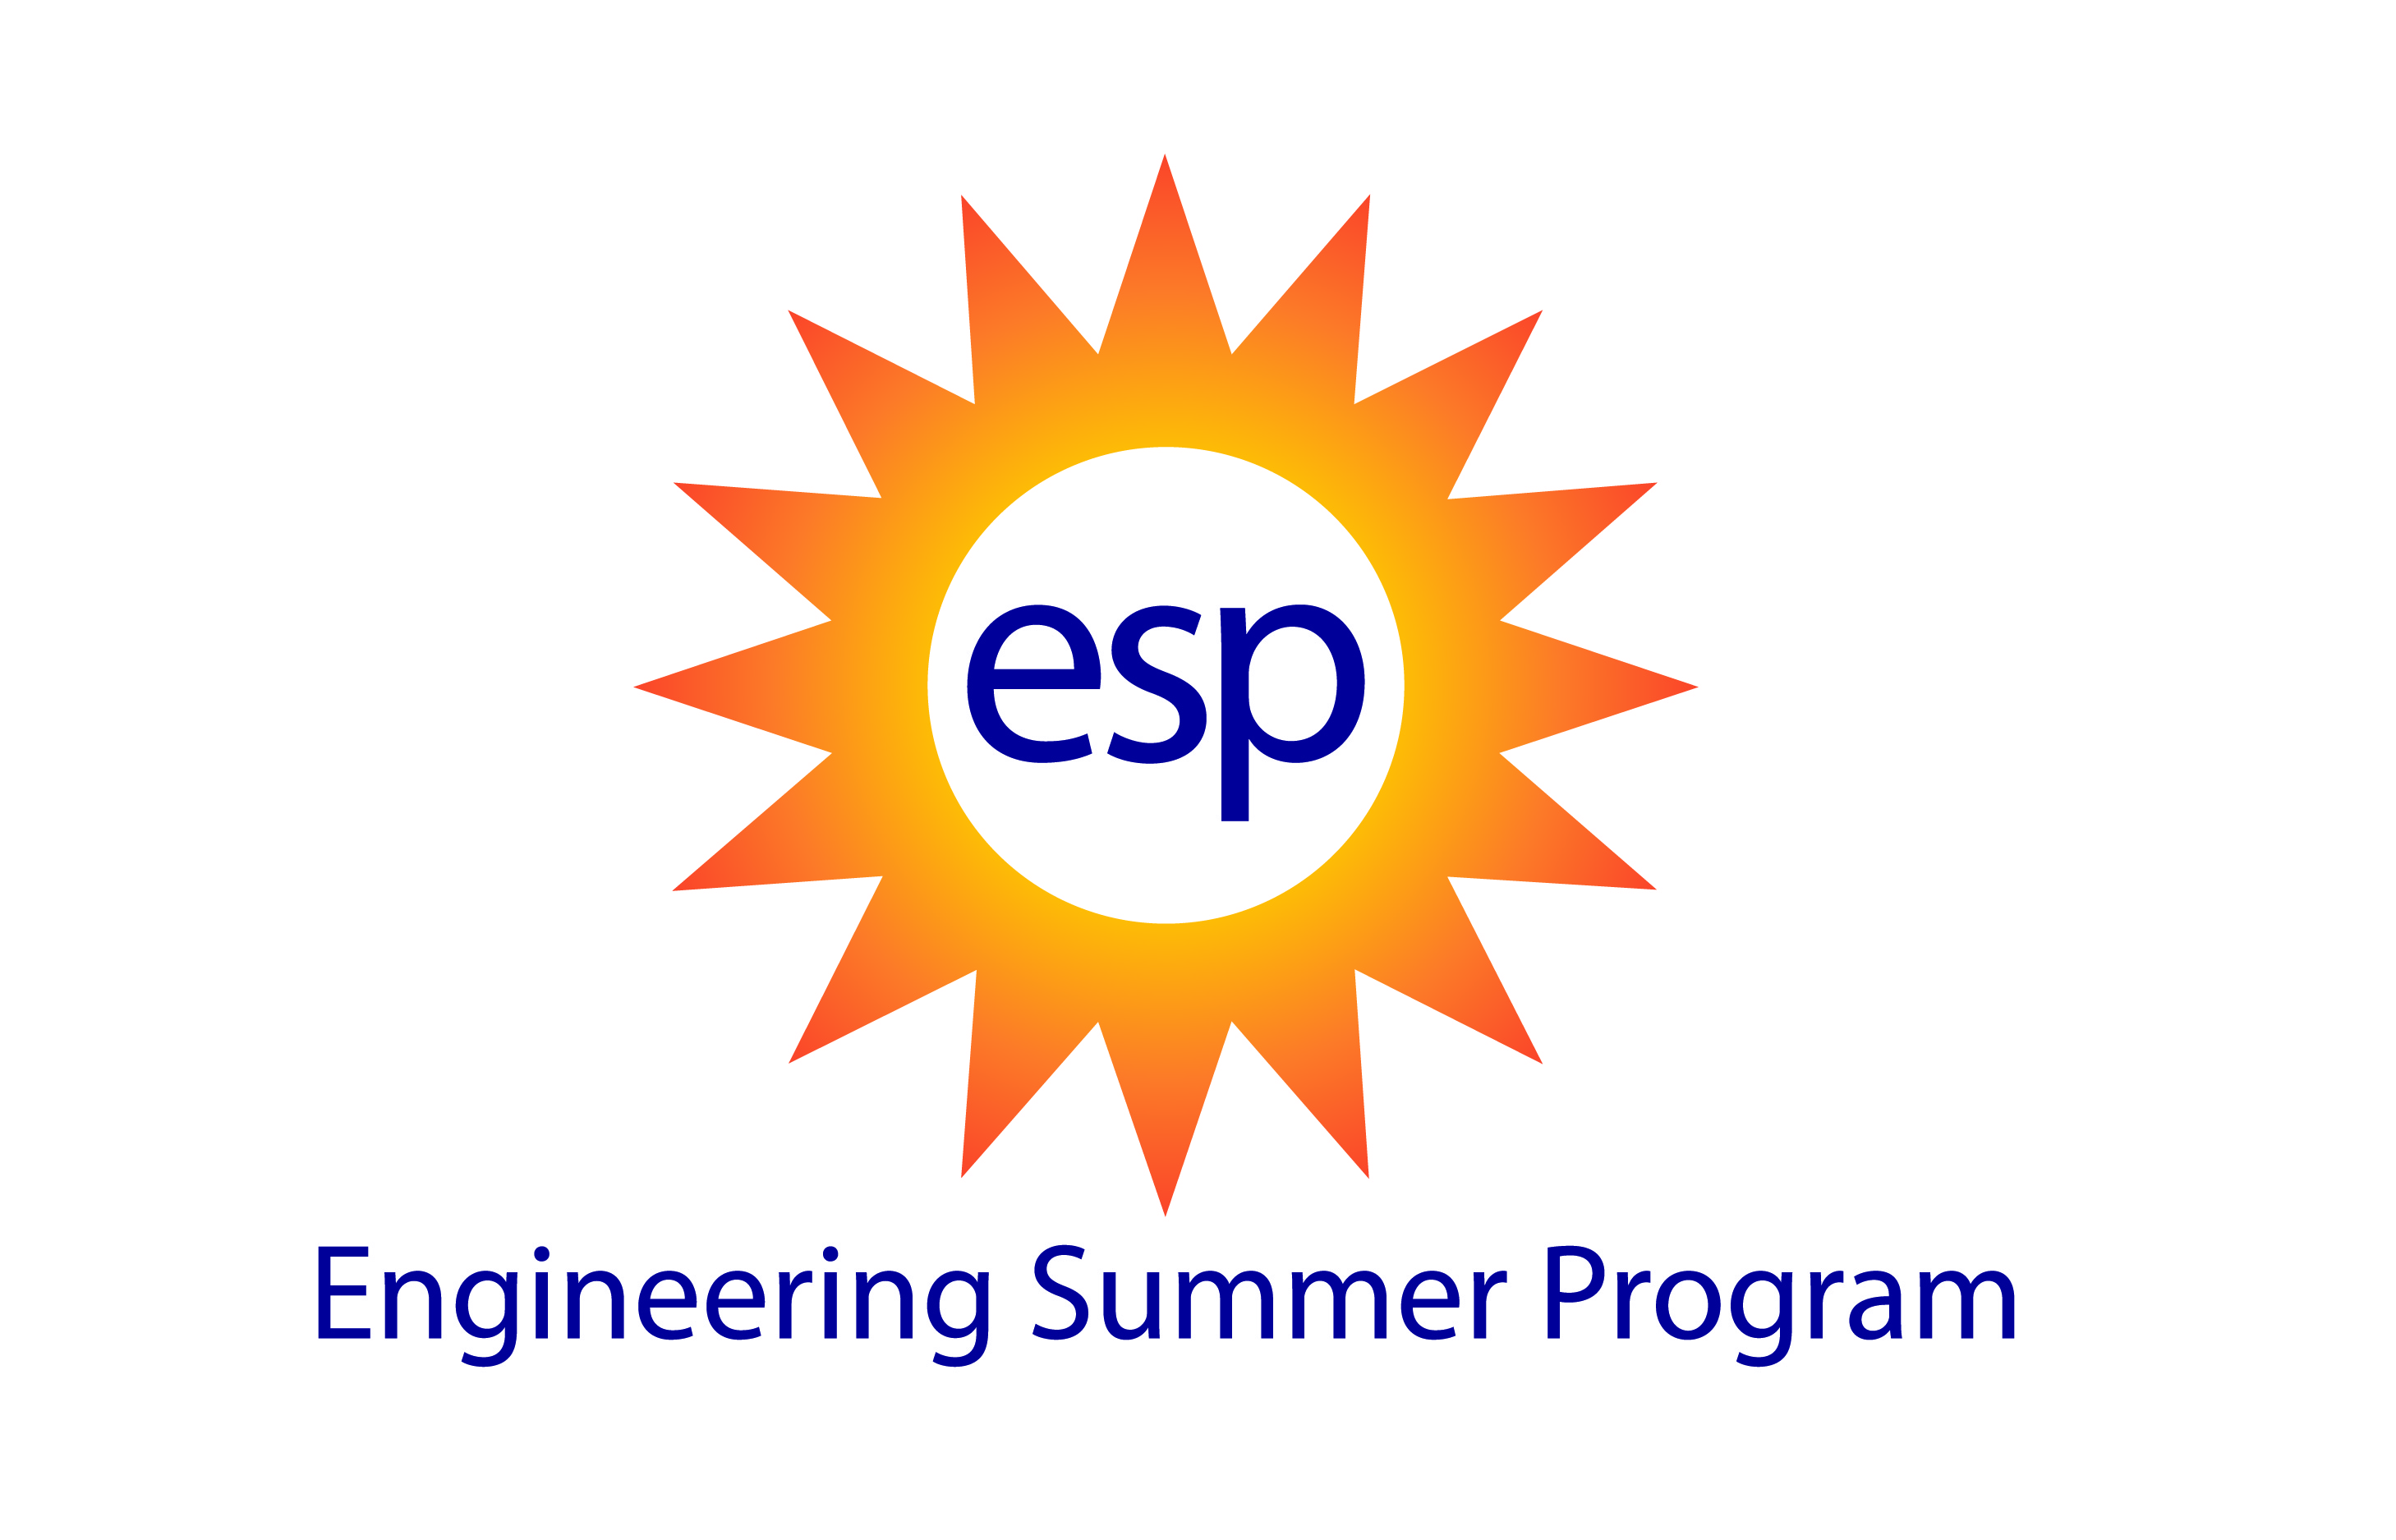 Engineering Summer Program (ESP)